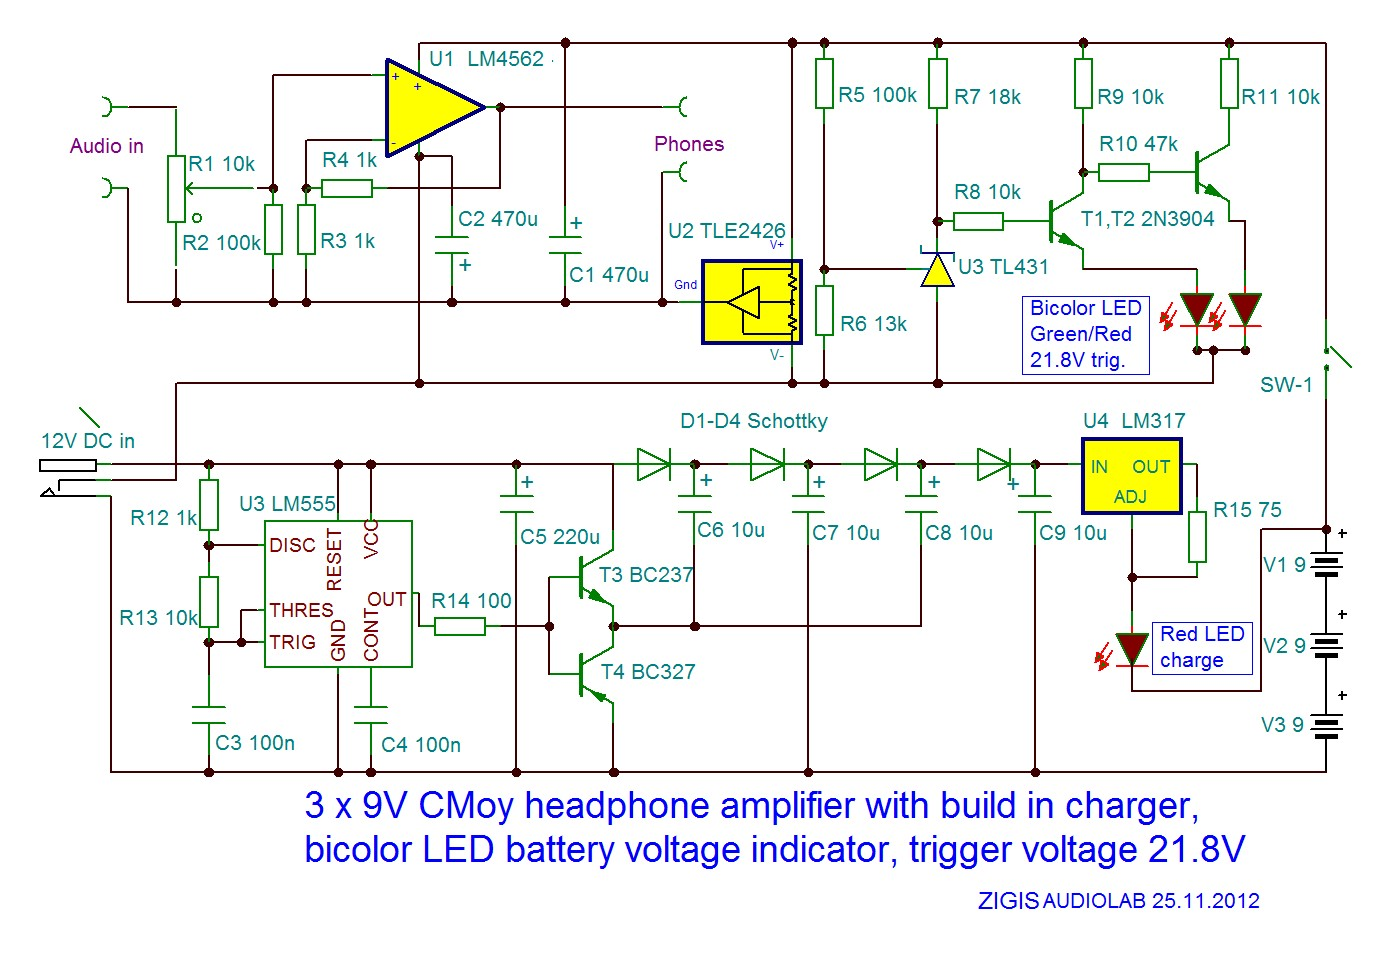 My New 3x9v Cmoy Headphone Reviews And Discussion Battery Voltage Indicator 3x9vcmoybattindschematic